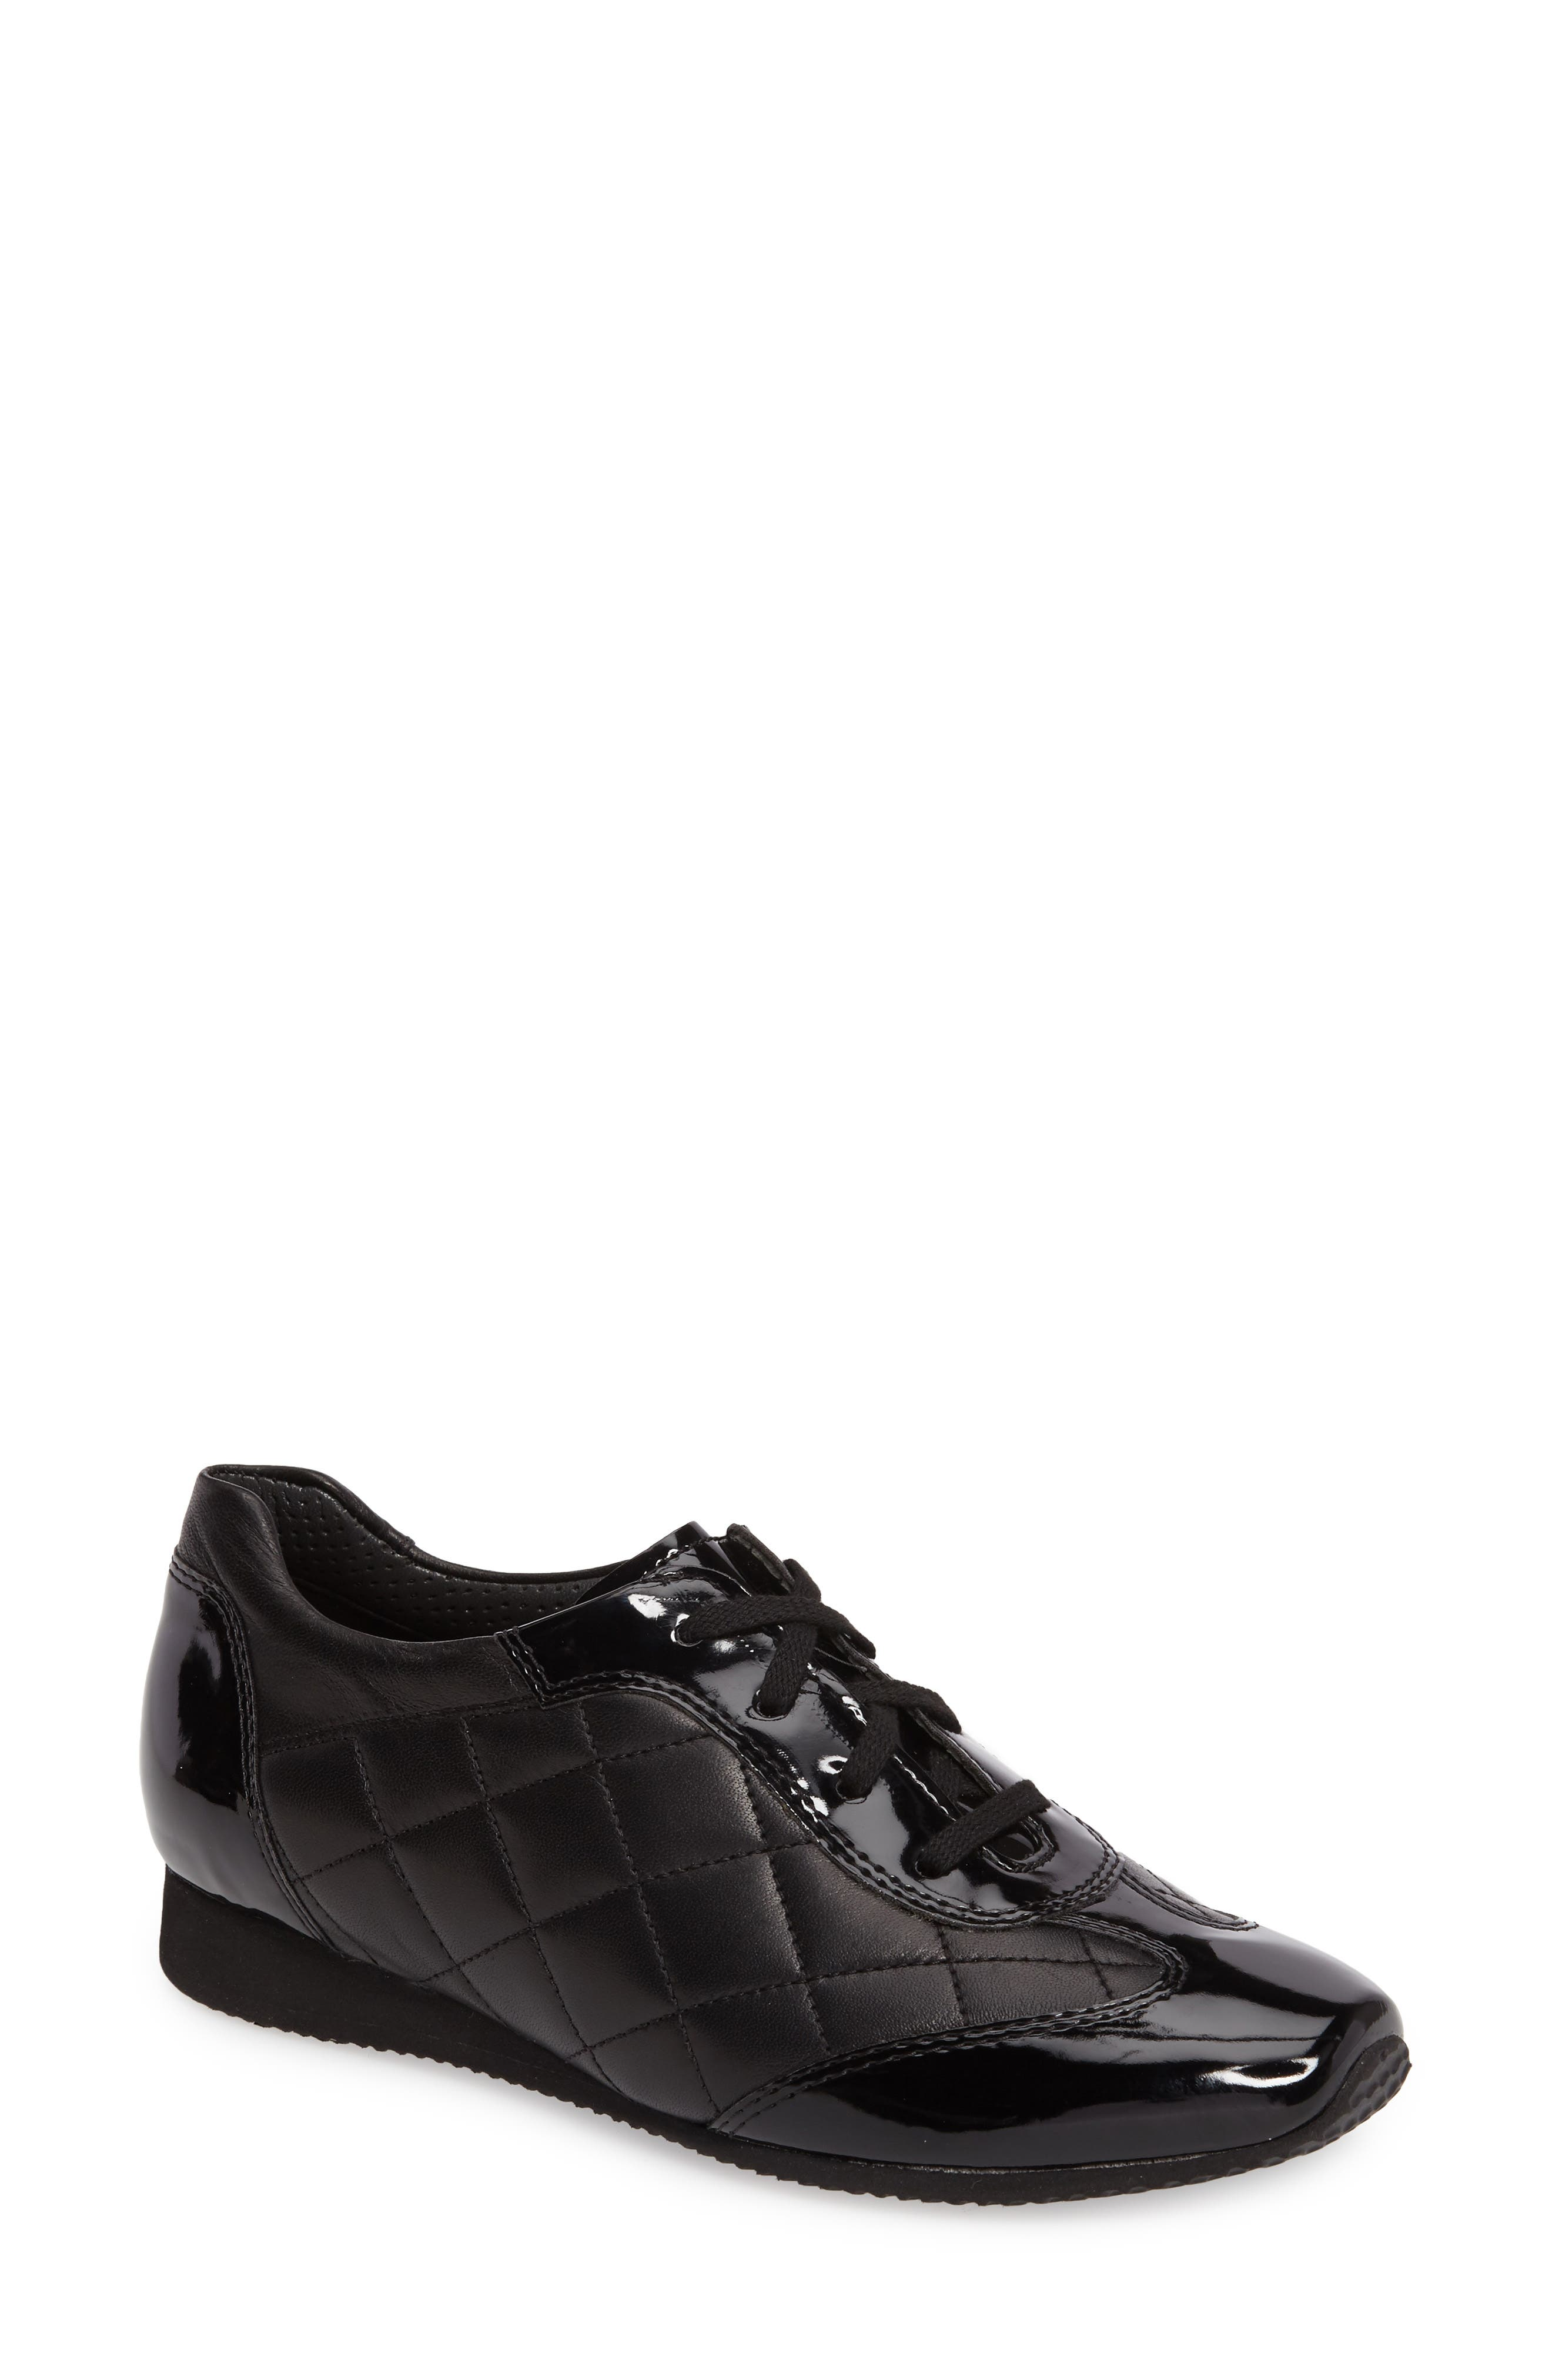 Ilana Sneaker,                         Main,                         color, BLACK QUILTED LEATHER